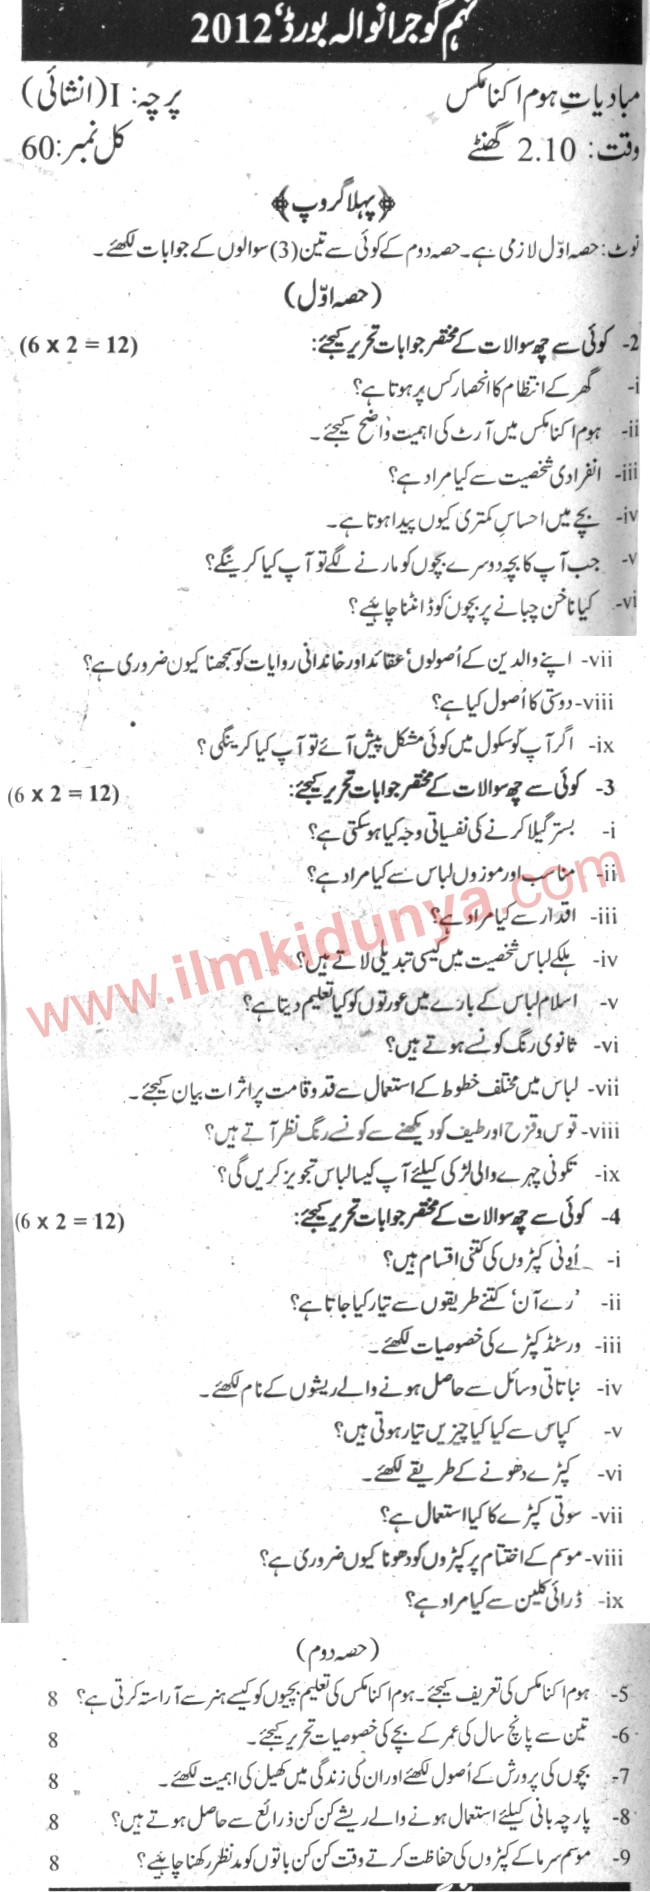 Past Papers 2012 Gujranwala Board 9th Class Home Economics